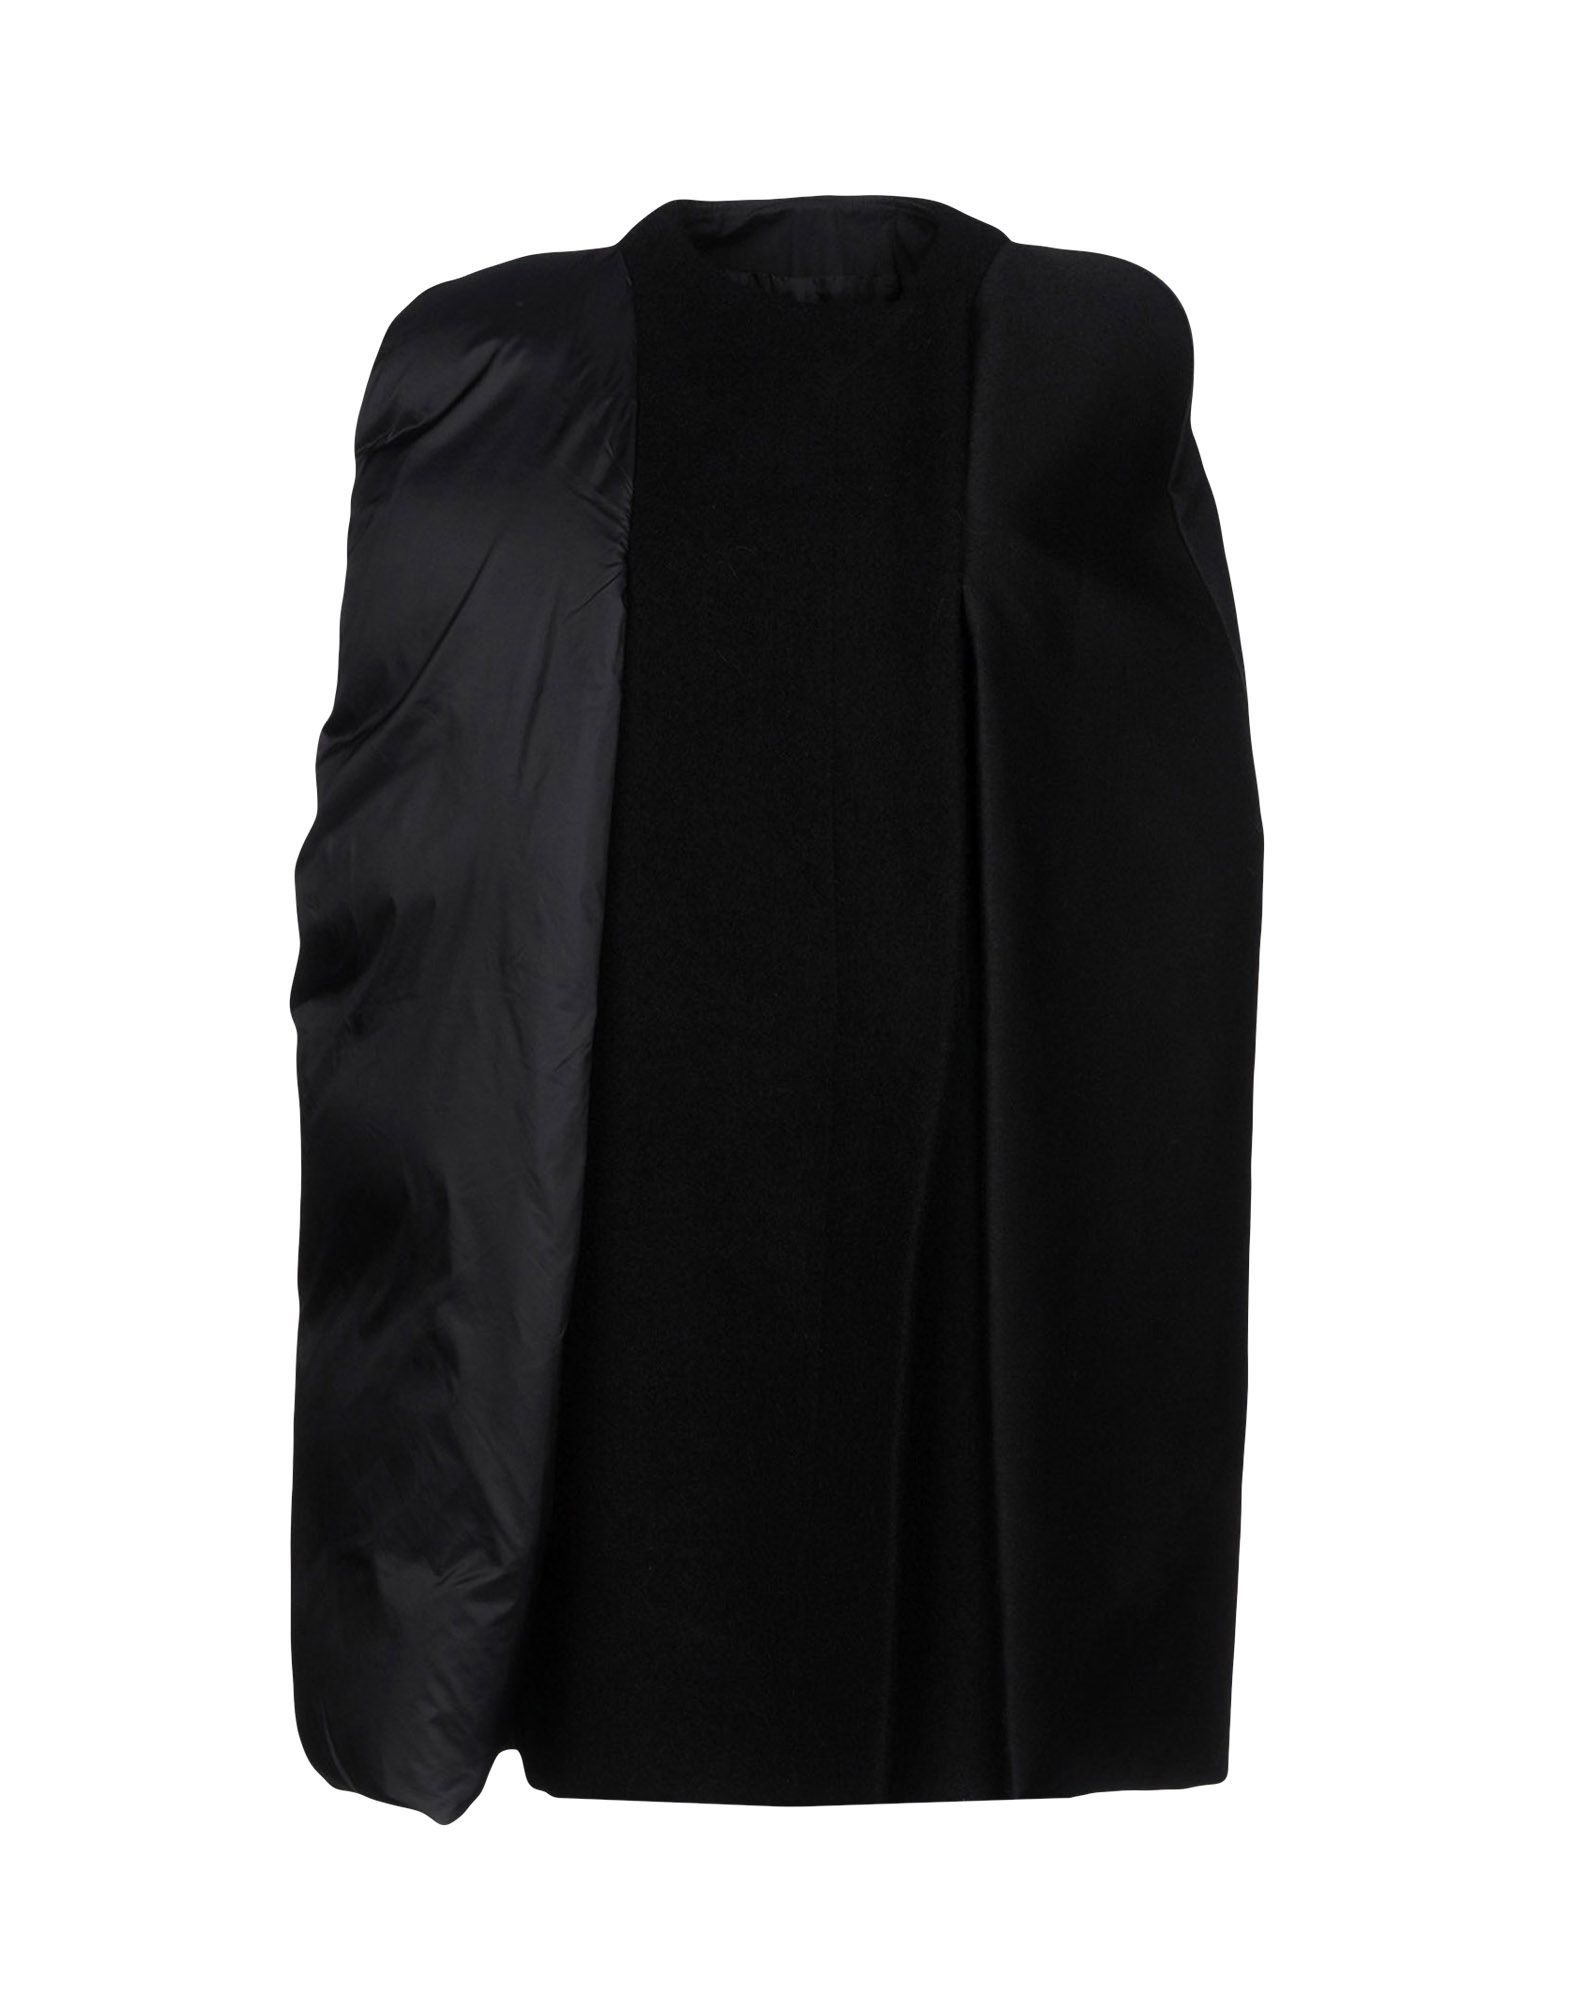 RICK OWENS Capes & ponchos. Techno fabric Boiled wool No appliqués Solid color Single-breasted Zip Round collar Multipockets Sleeveless Semi-lined Generic outerwear Small sized. 100% Virgin Wool, Polyamide, Wool, Cotton, Silk